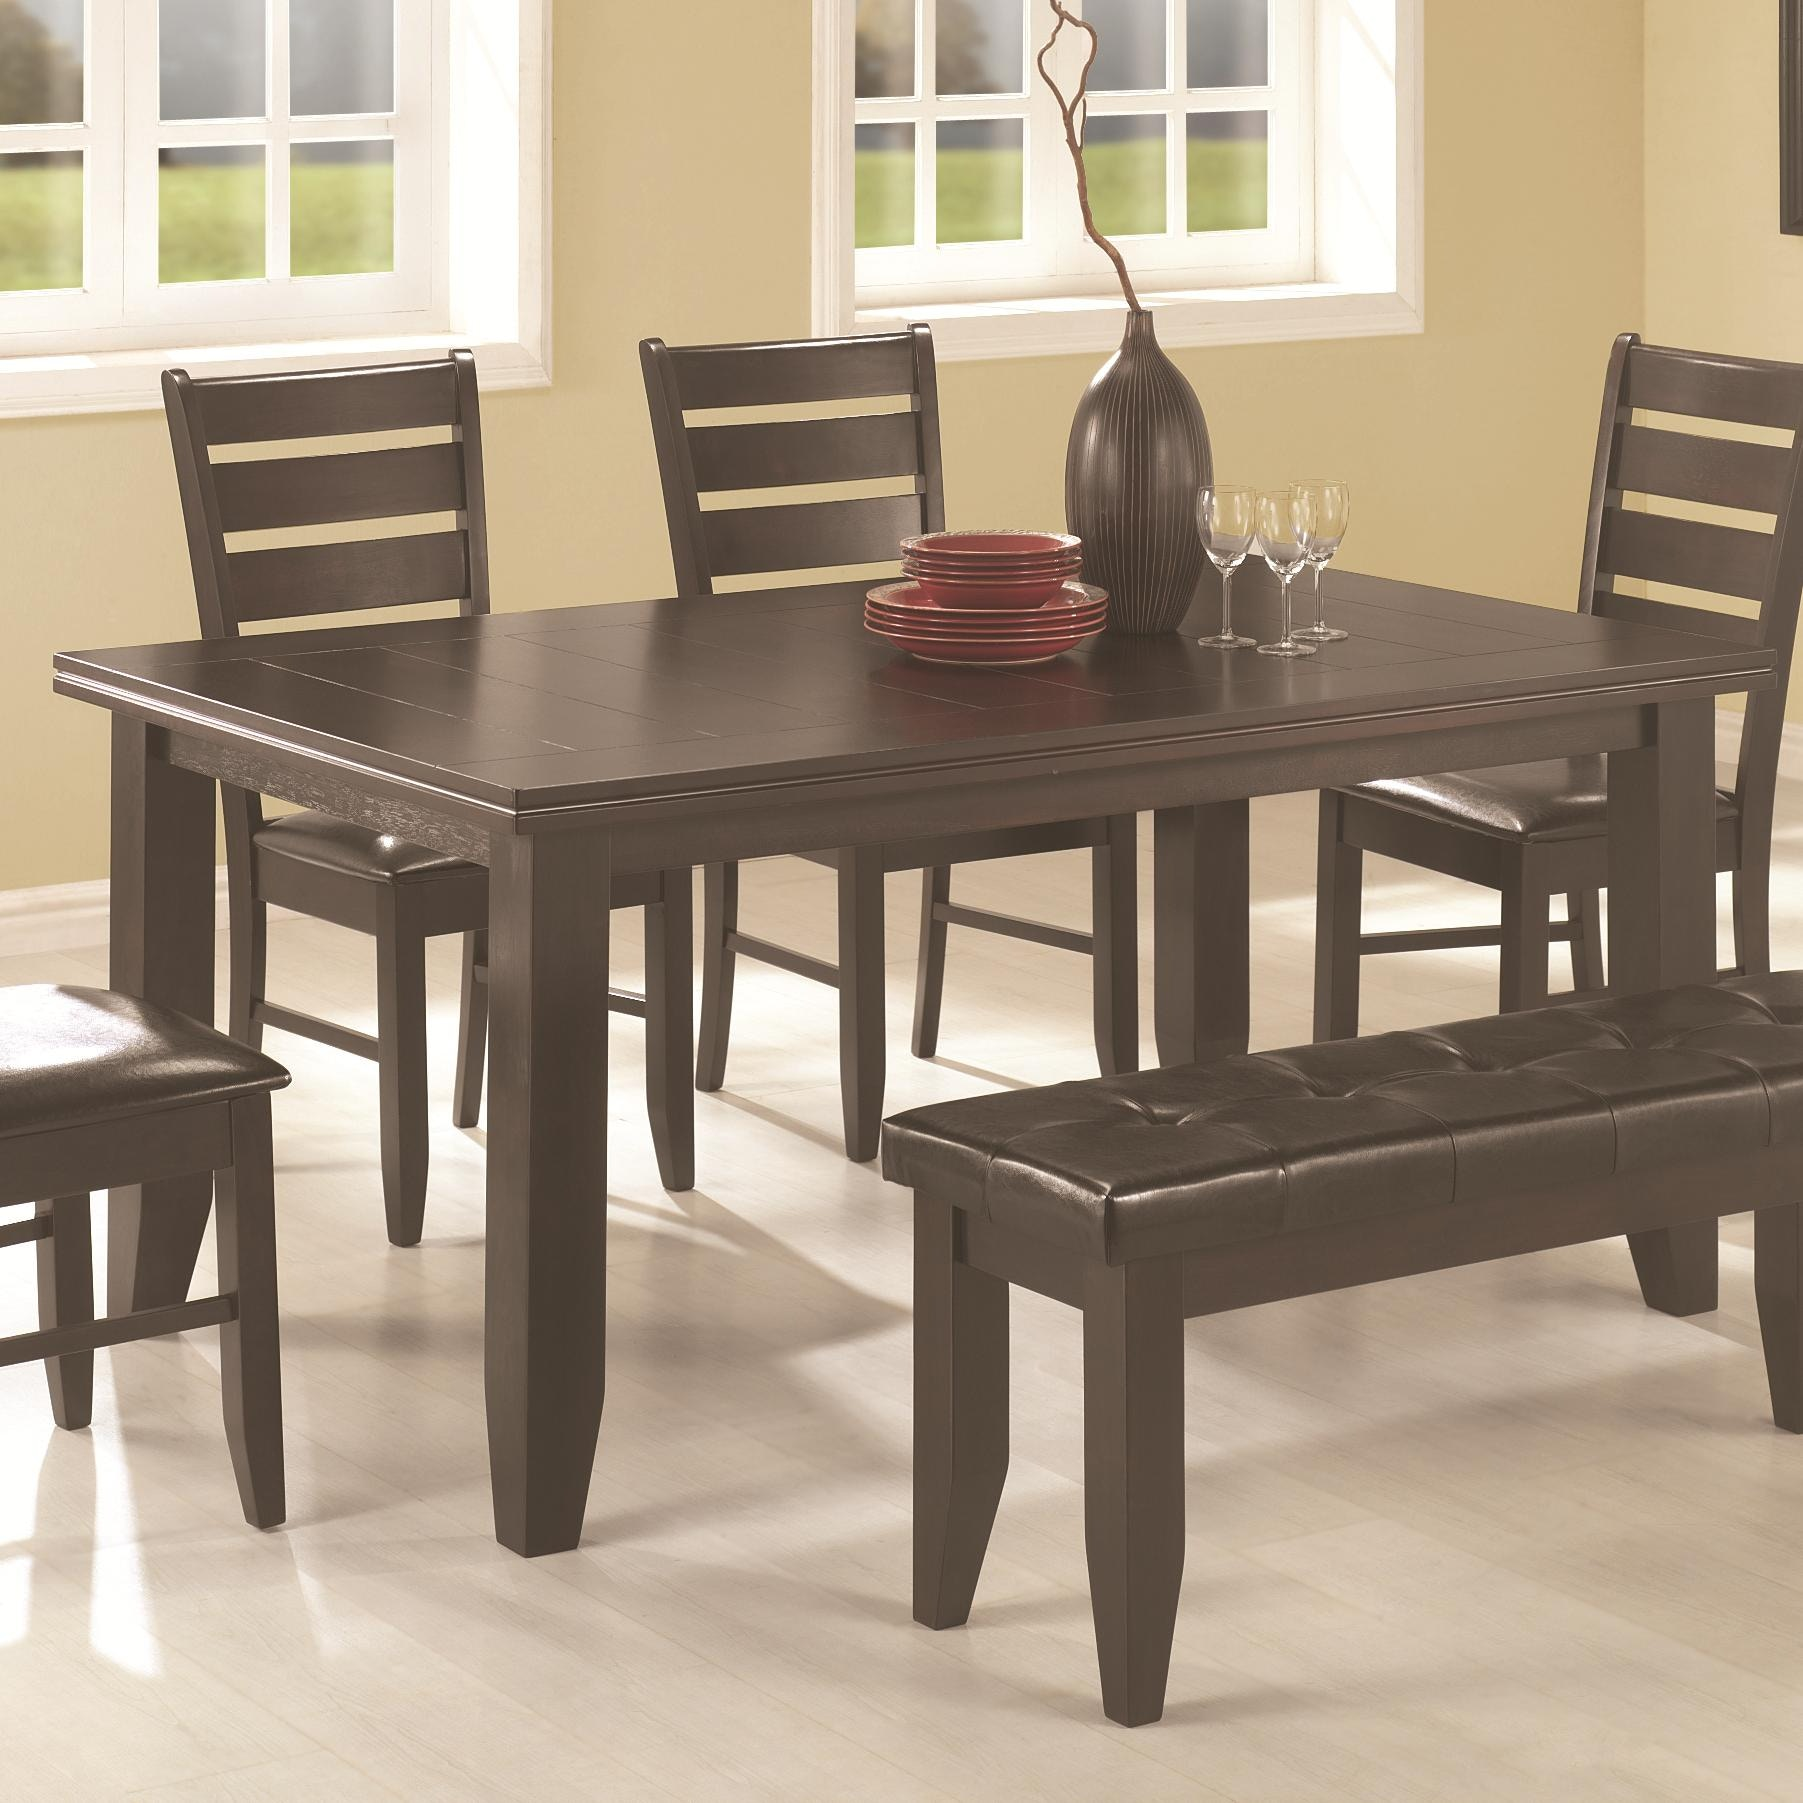 Coaster Dining Table 102721 ...